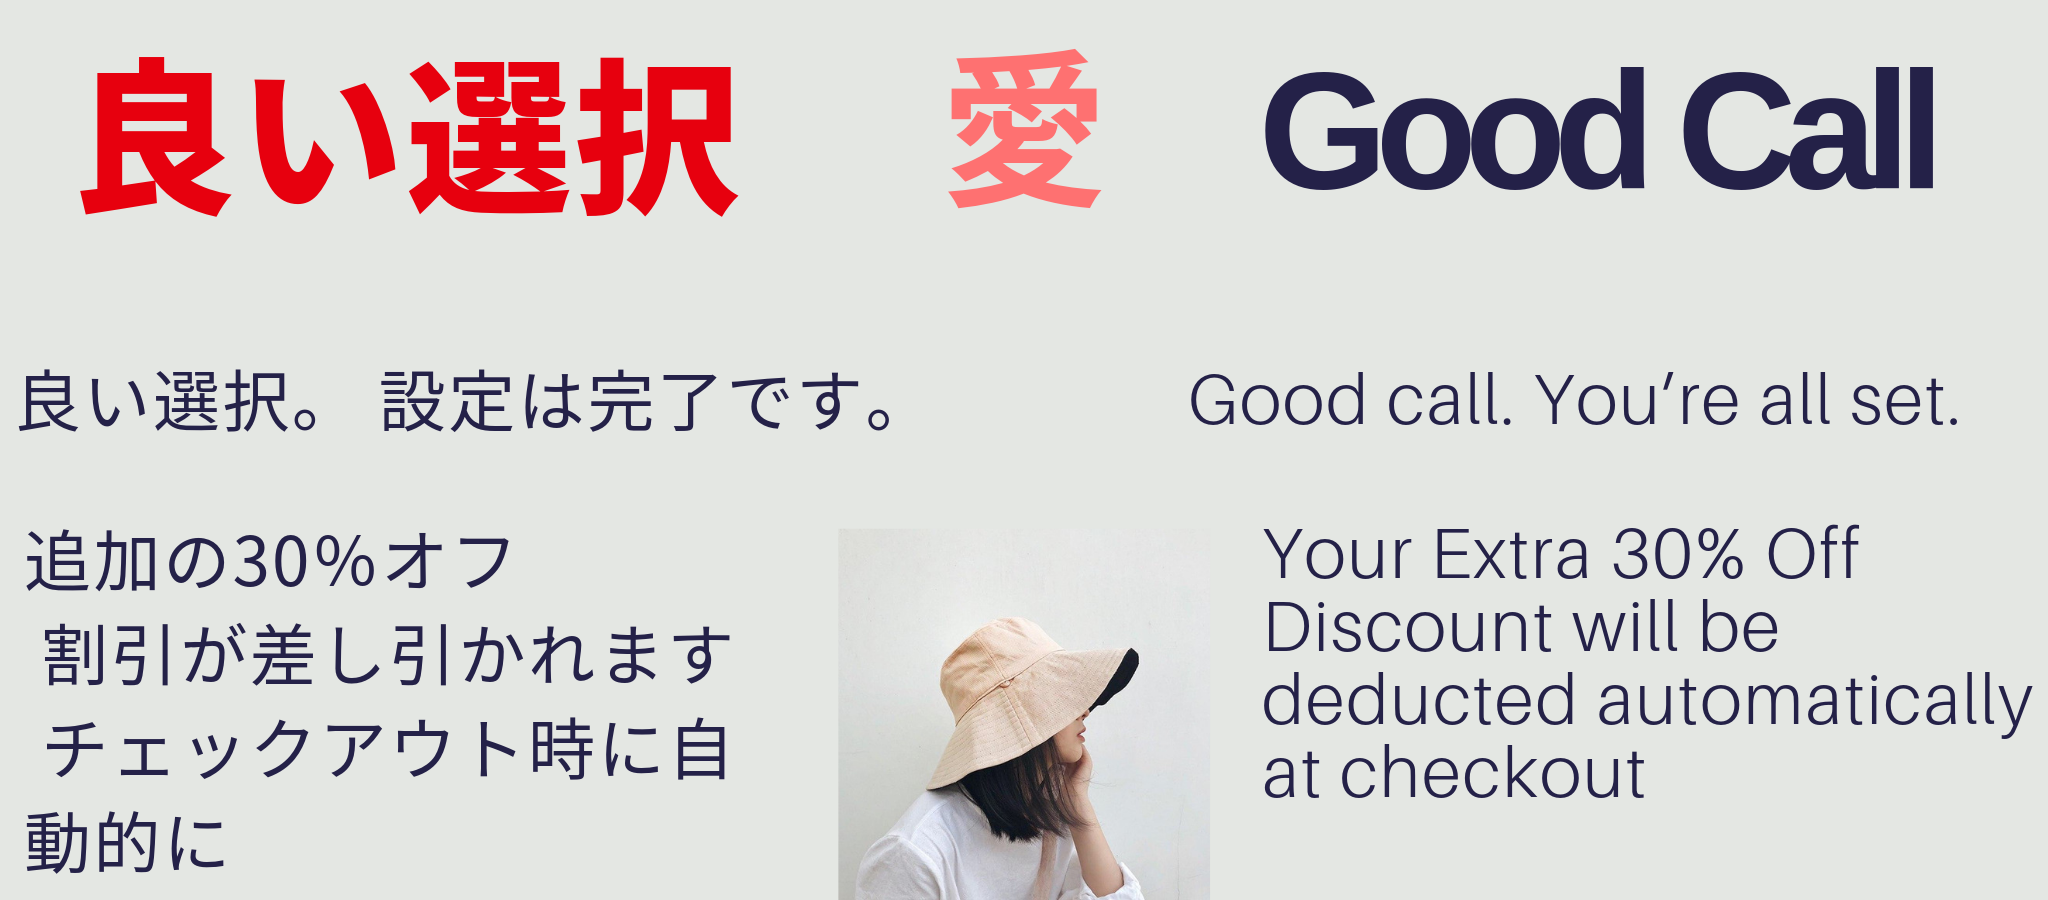 miTeigi | Discount applied at Checkout | Japanese Apparel and Home Decor Retail Shopping